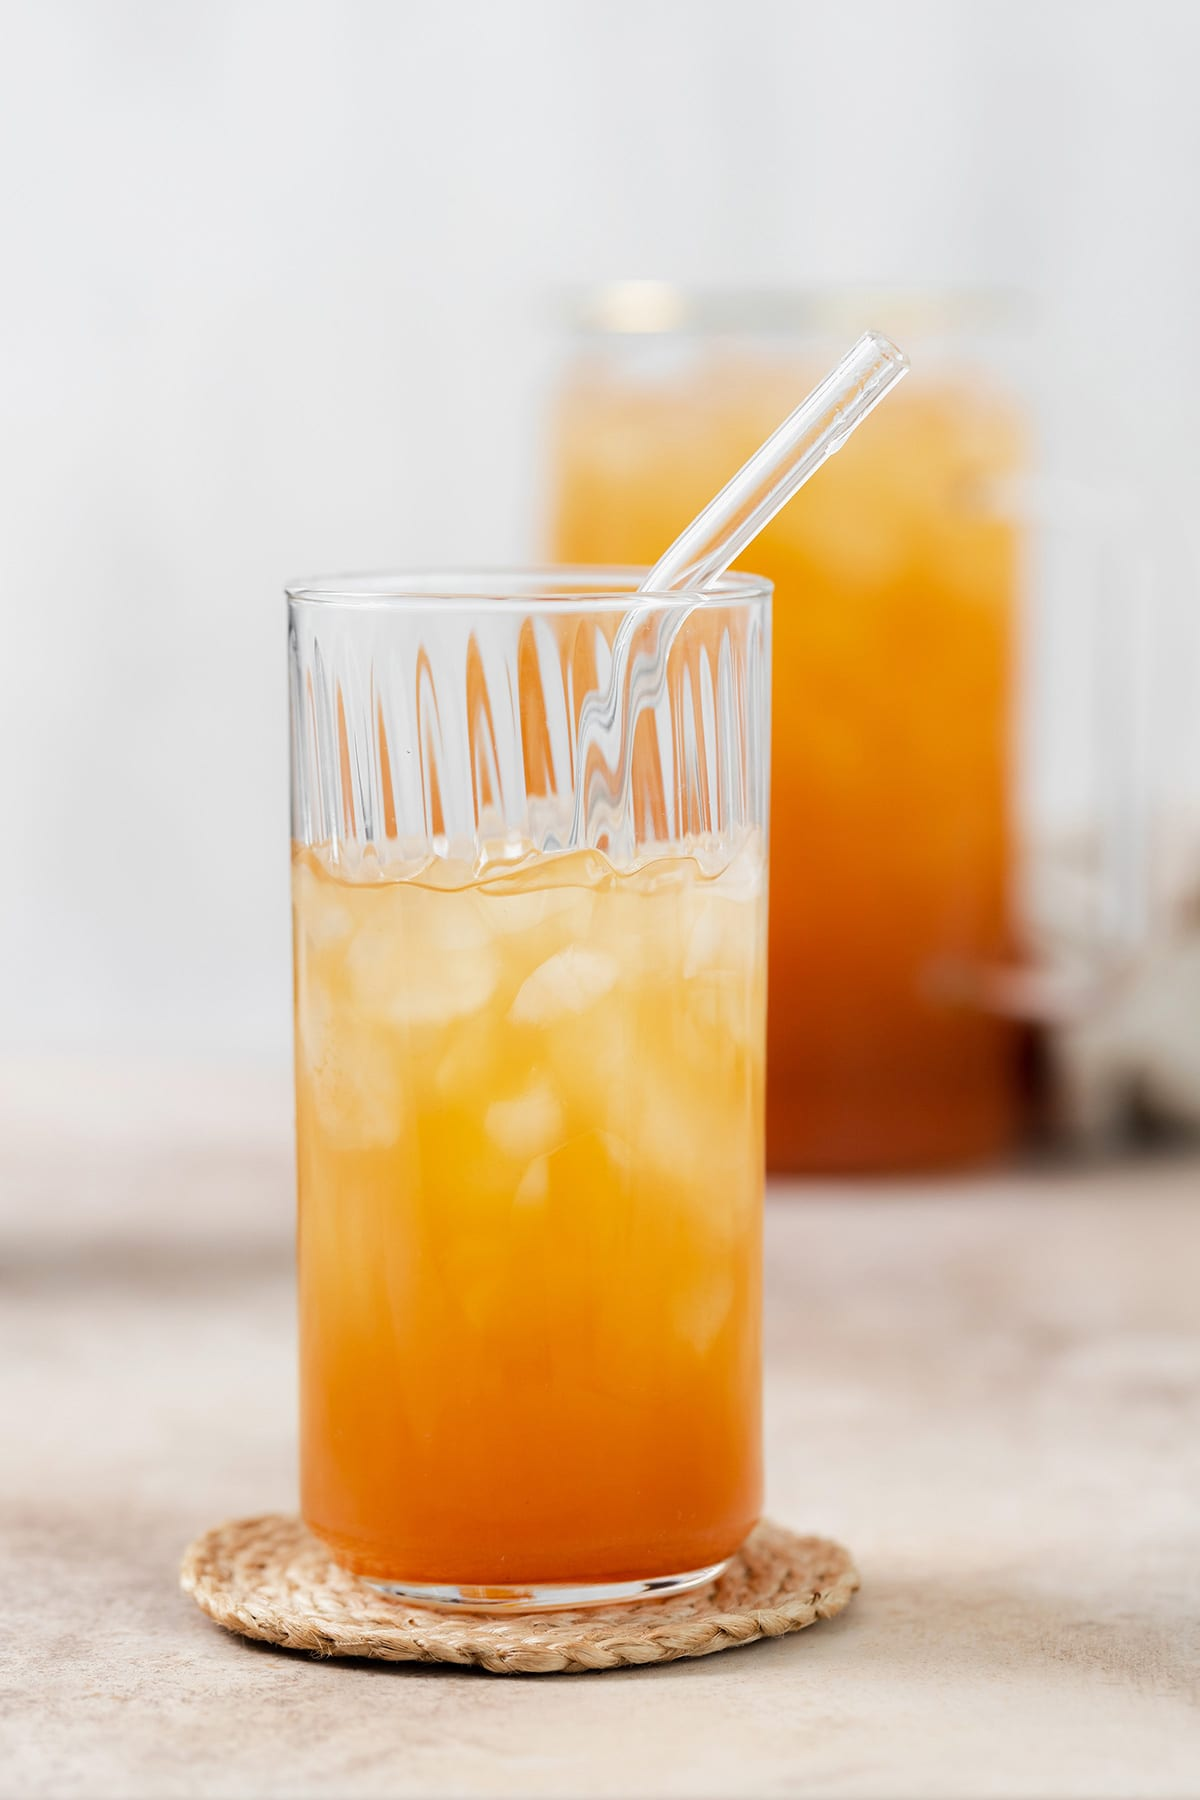 Iced Guava Black Tea shown in a tall glass with ice and a glass straw on beige background. Glass is 3/4 full. More glasses and a jug full of iced tea partially in the frame on both left and right. Beige tea towel blurry in the background.